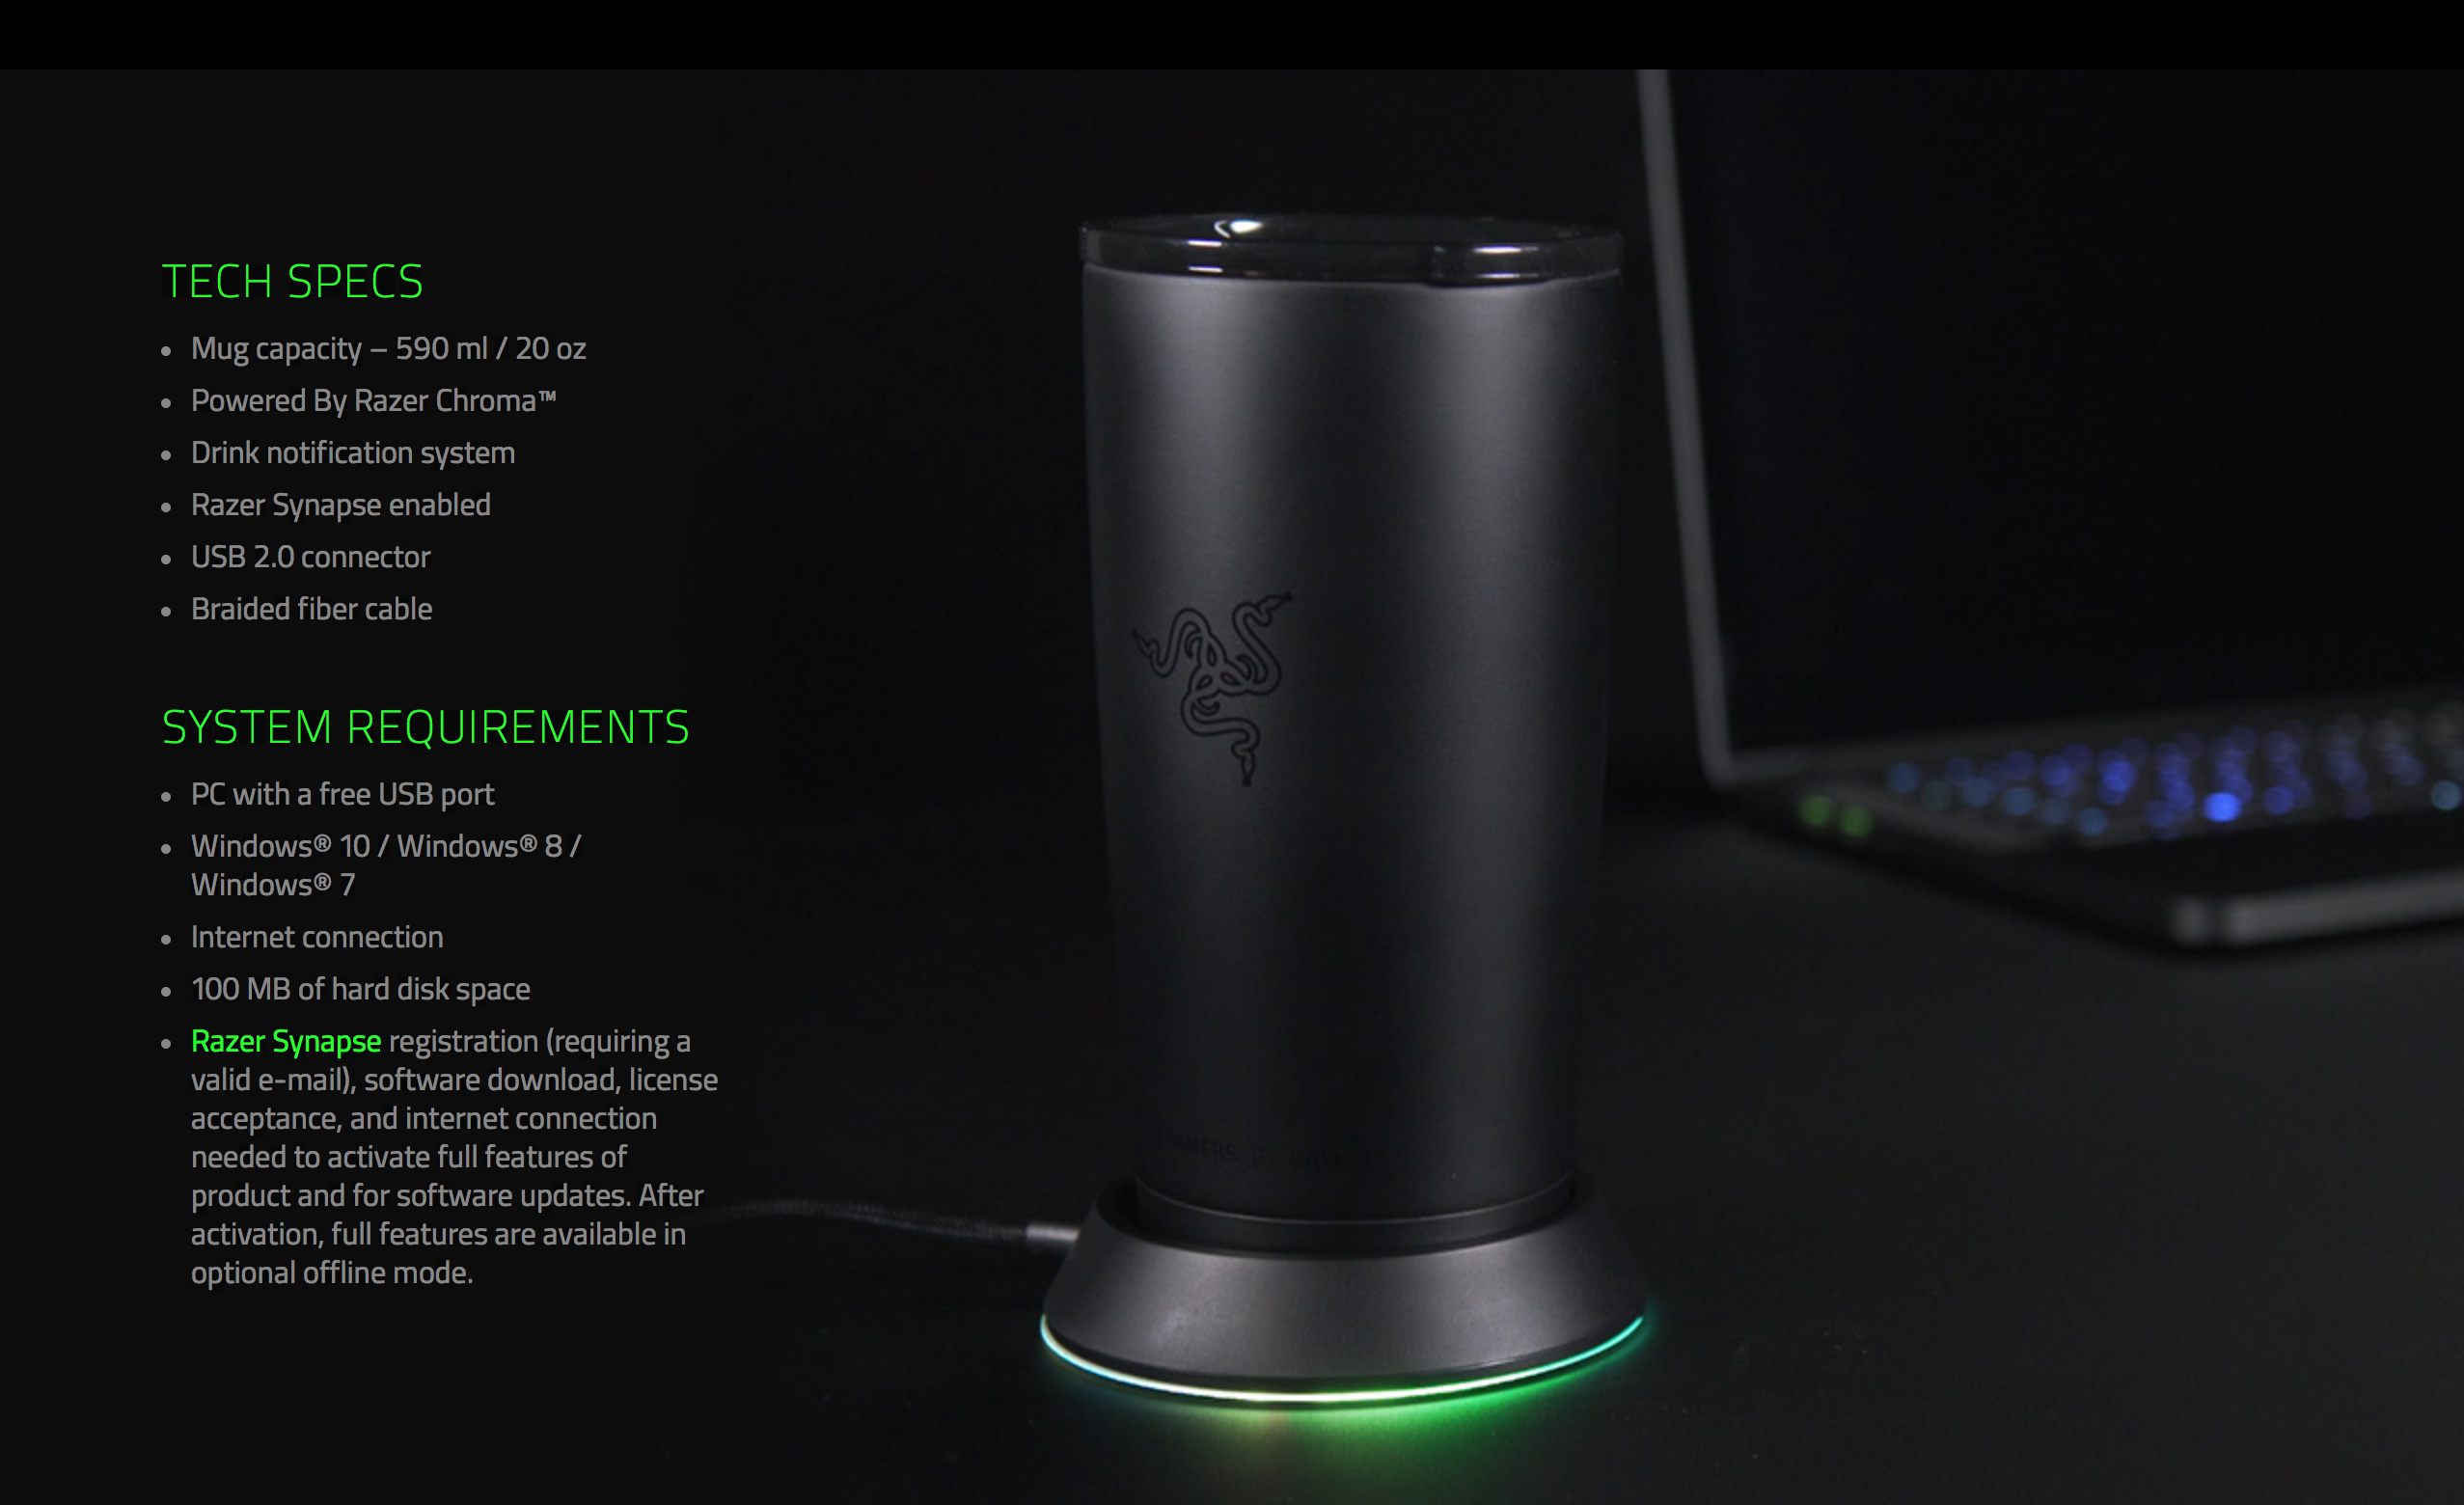 Razer zVault doles out free goodies for playing video games